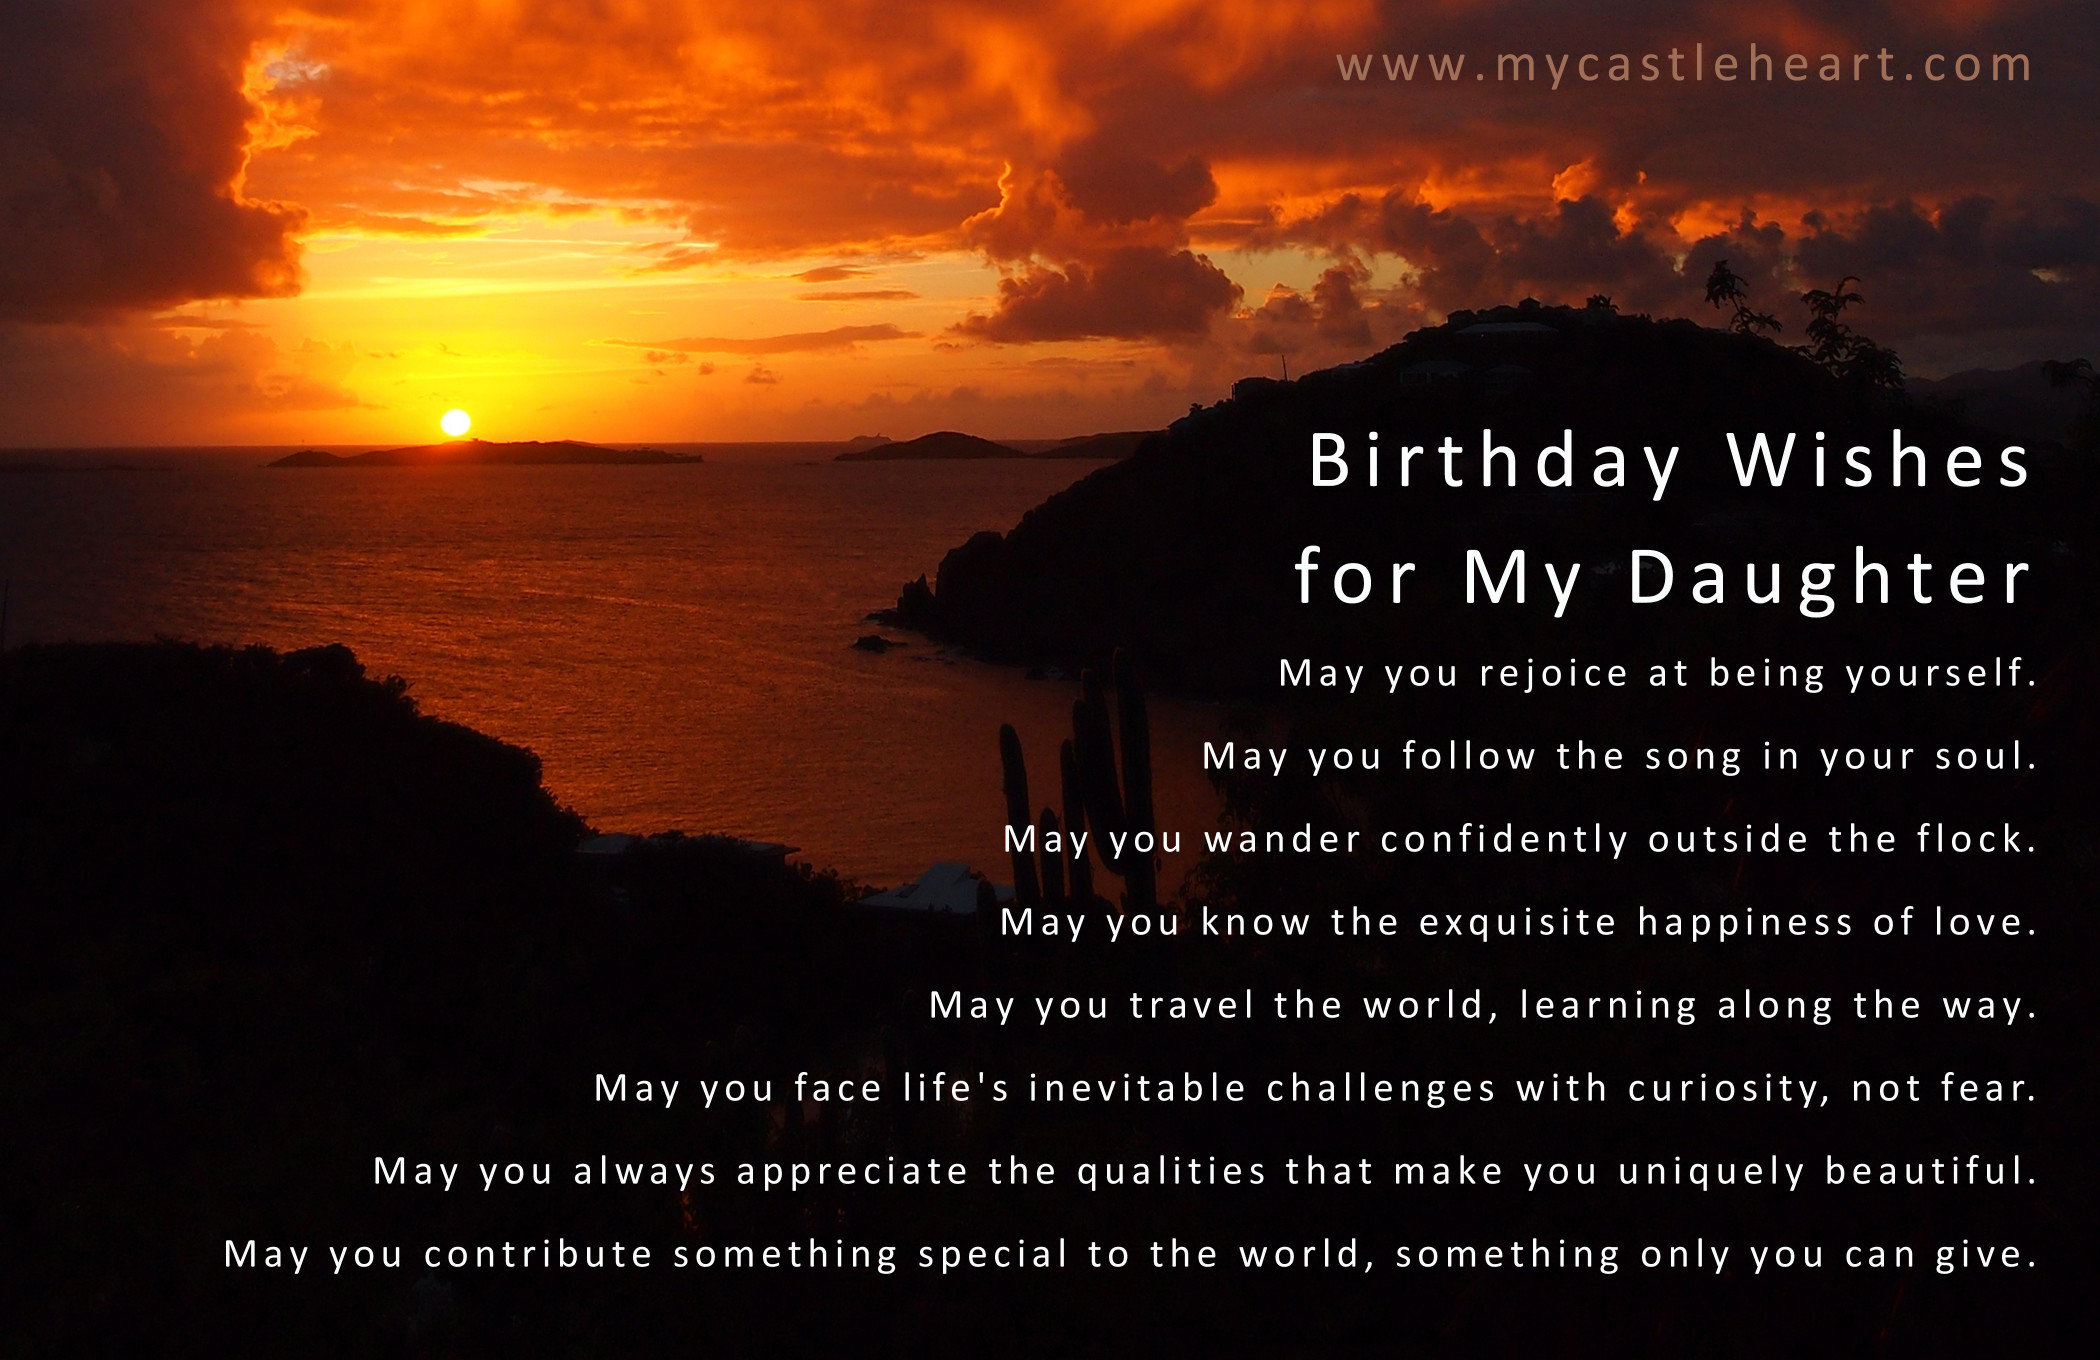 Best ideas about Happy Birthday Wishes To My Daughter . Save or Pin Birthday Wishes for My Daughter Now.